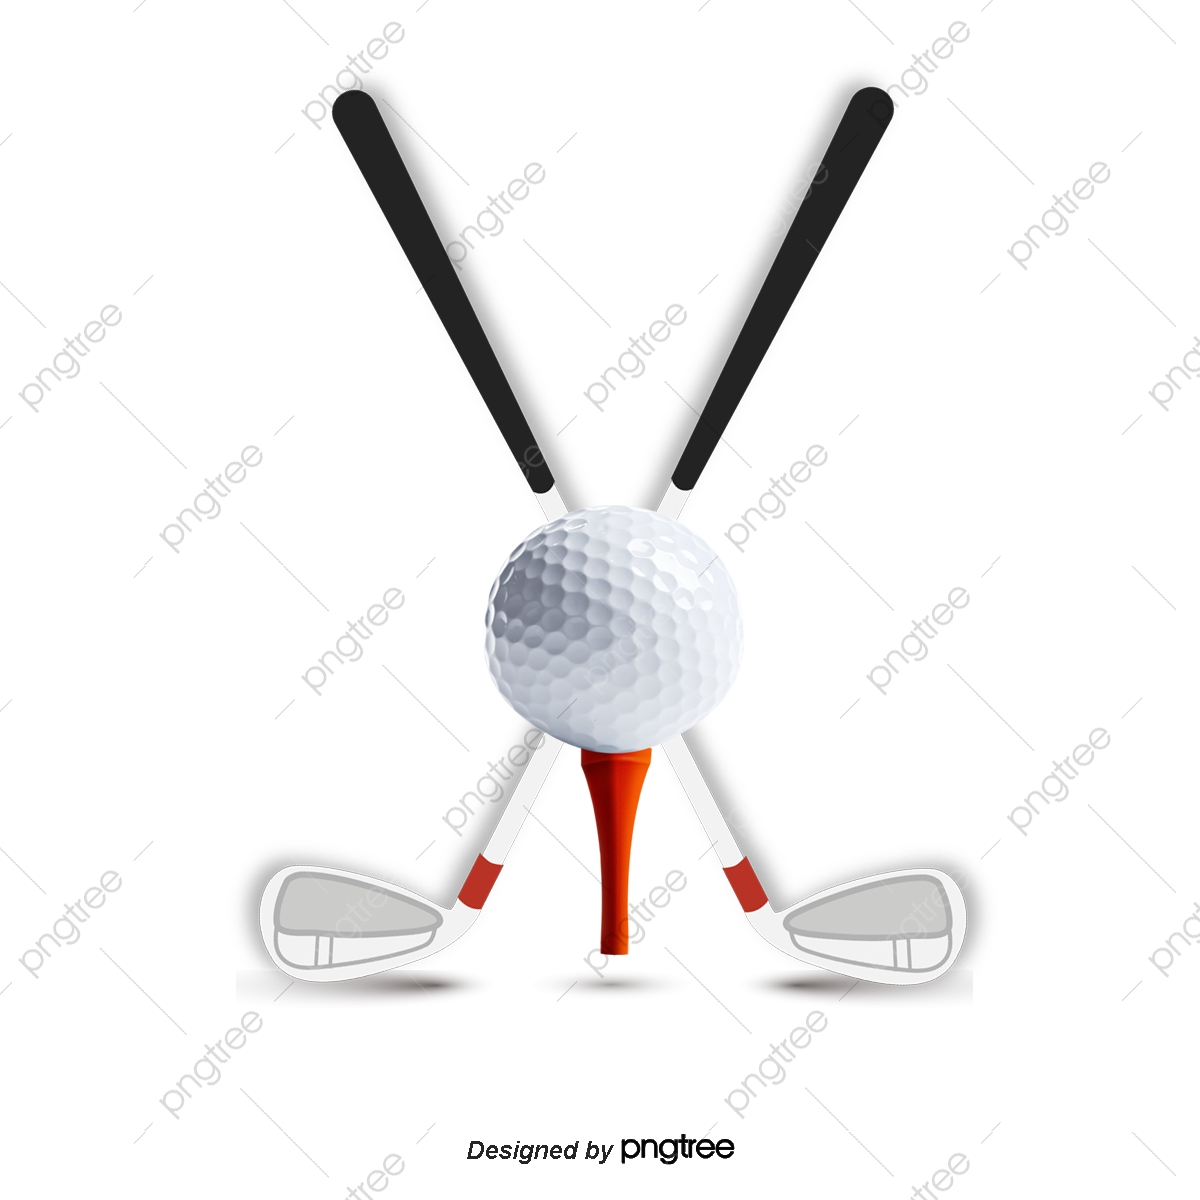 Golf Clubs And Golf Cue Vector Golf Png Transparent Clipart Image And Psd File For Free Download